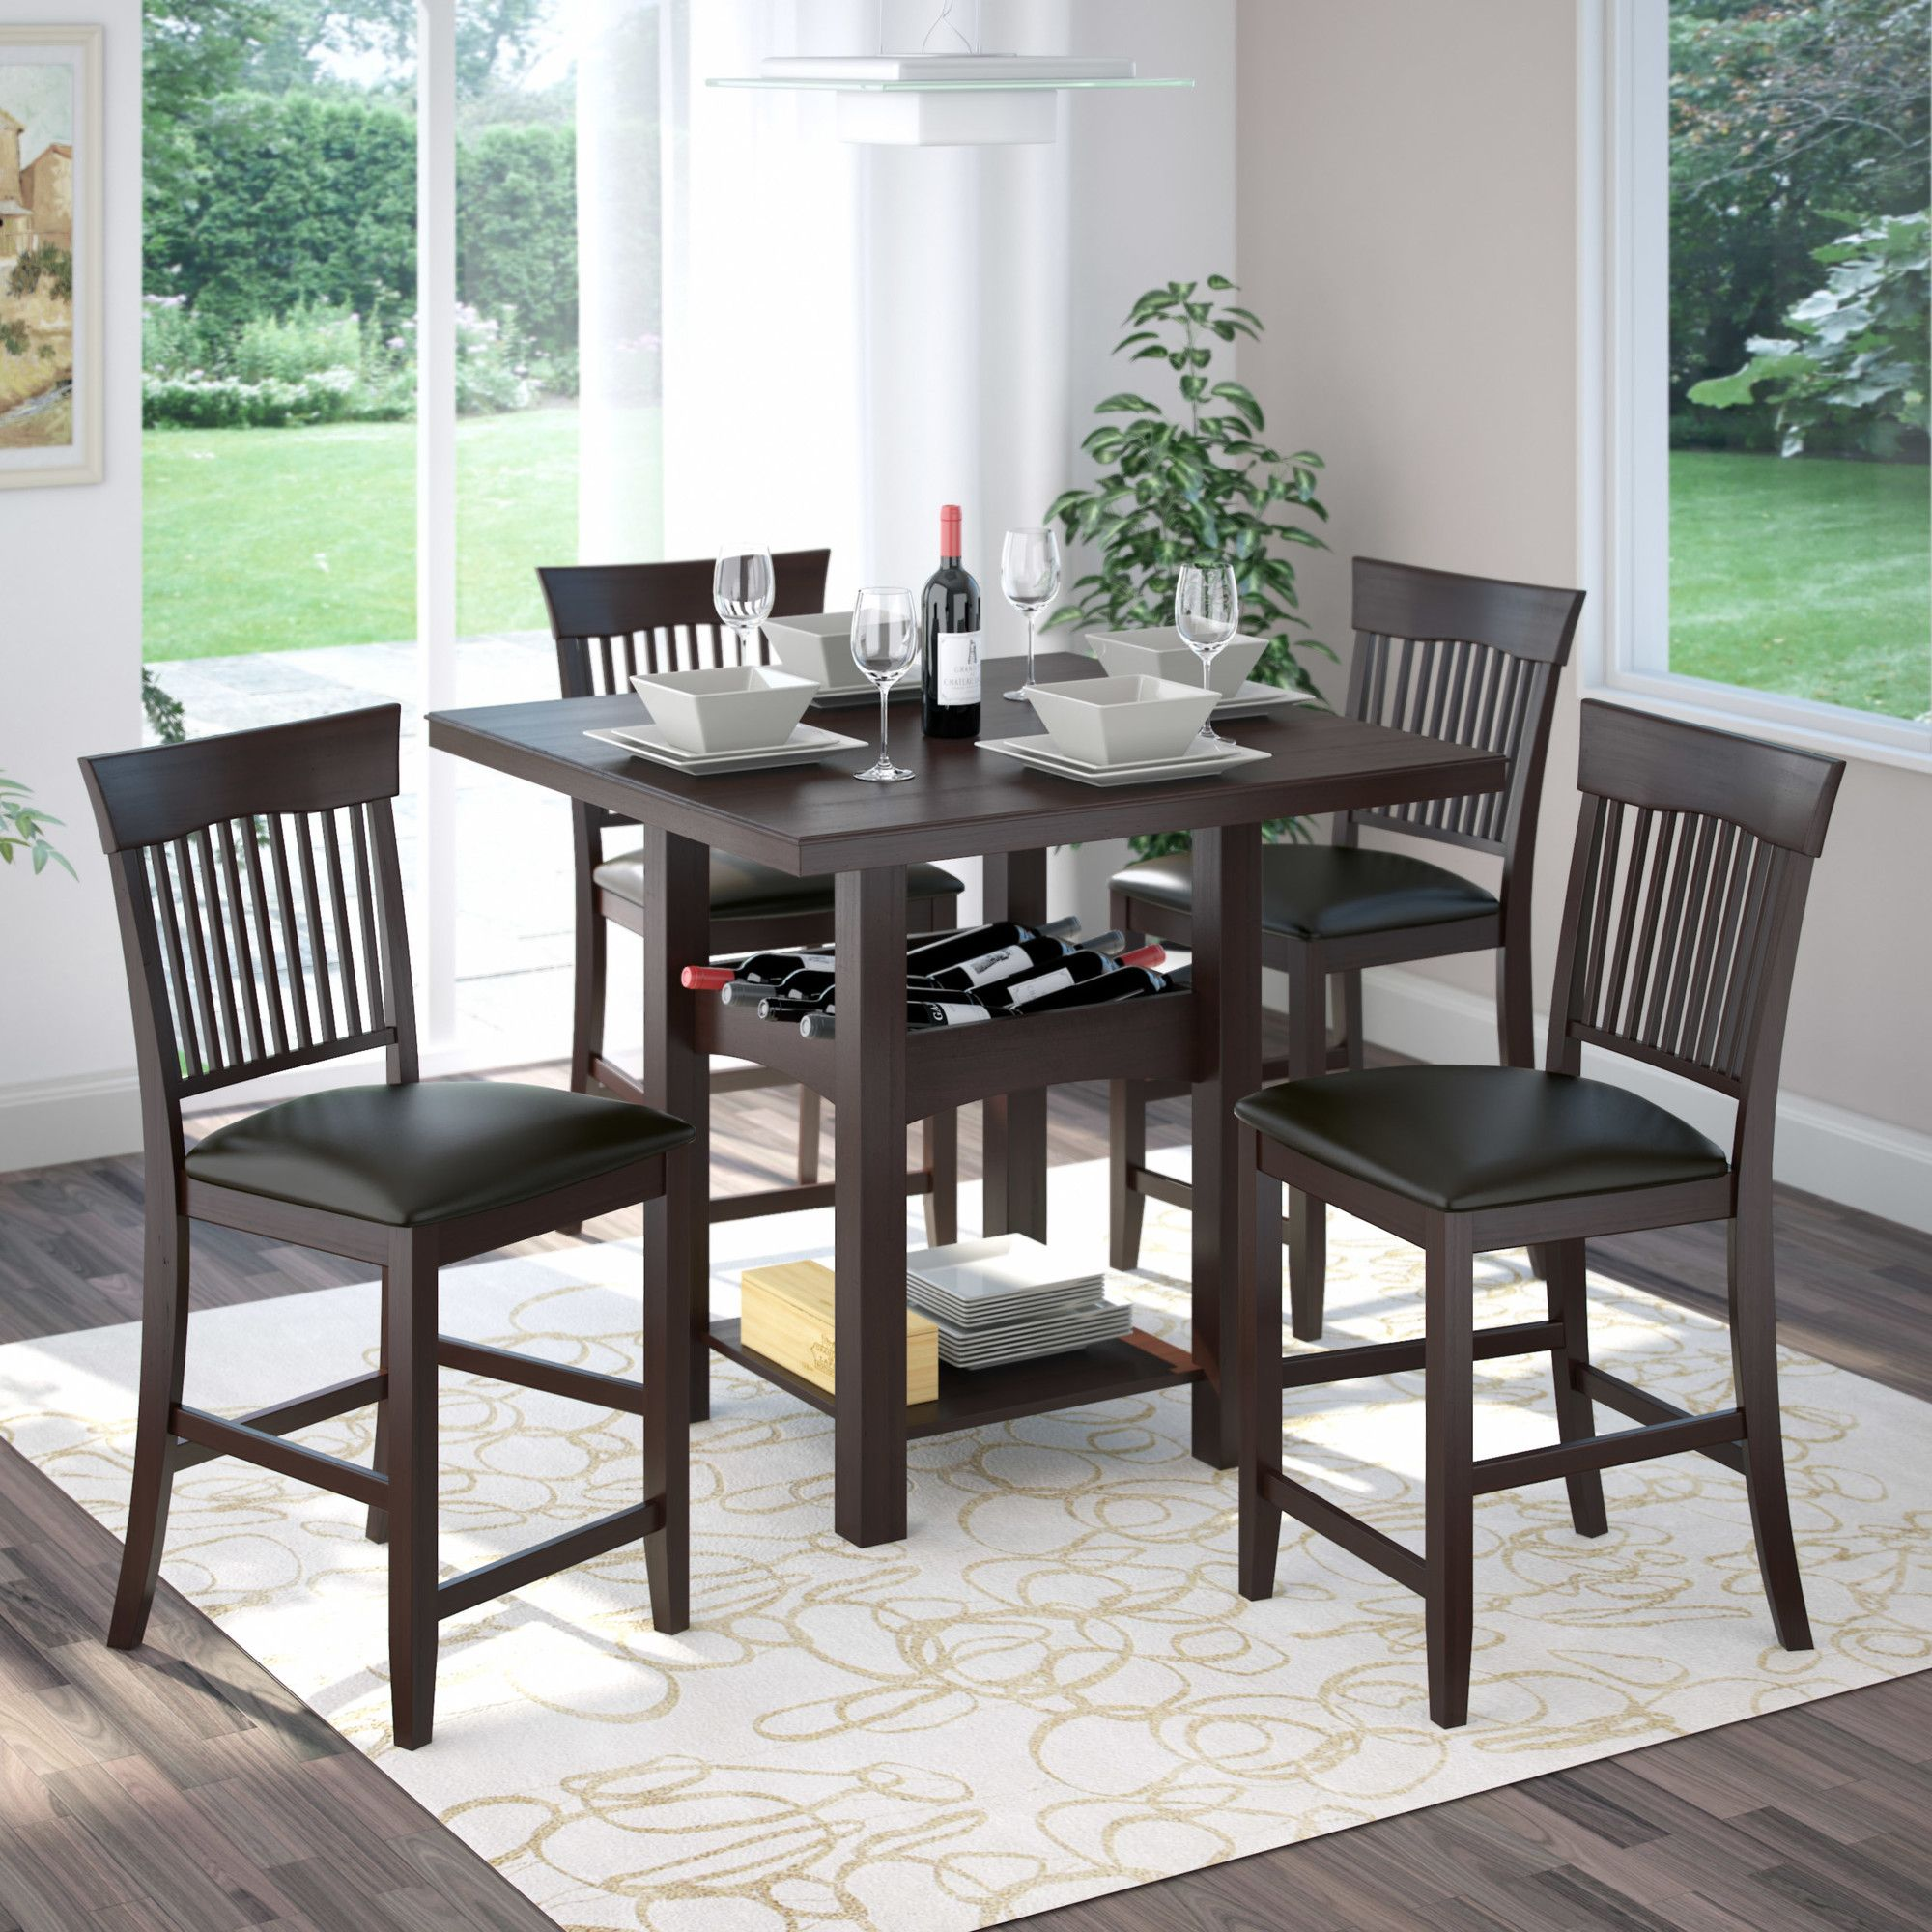 CorLiving Bistro 5 Piece Counter Height Dining Set & Reviews ...